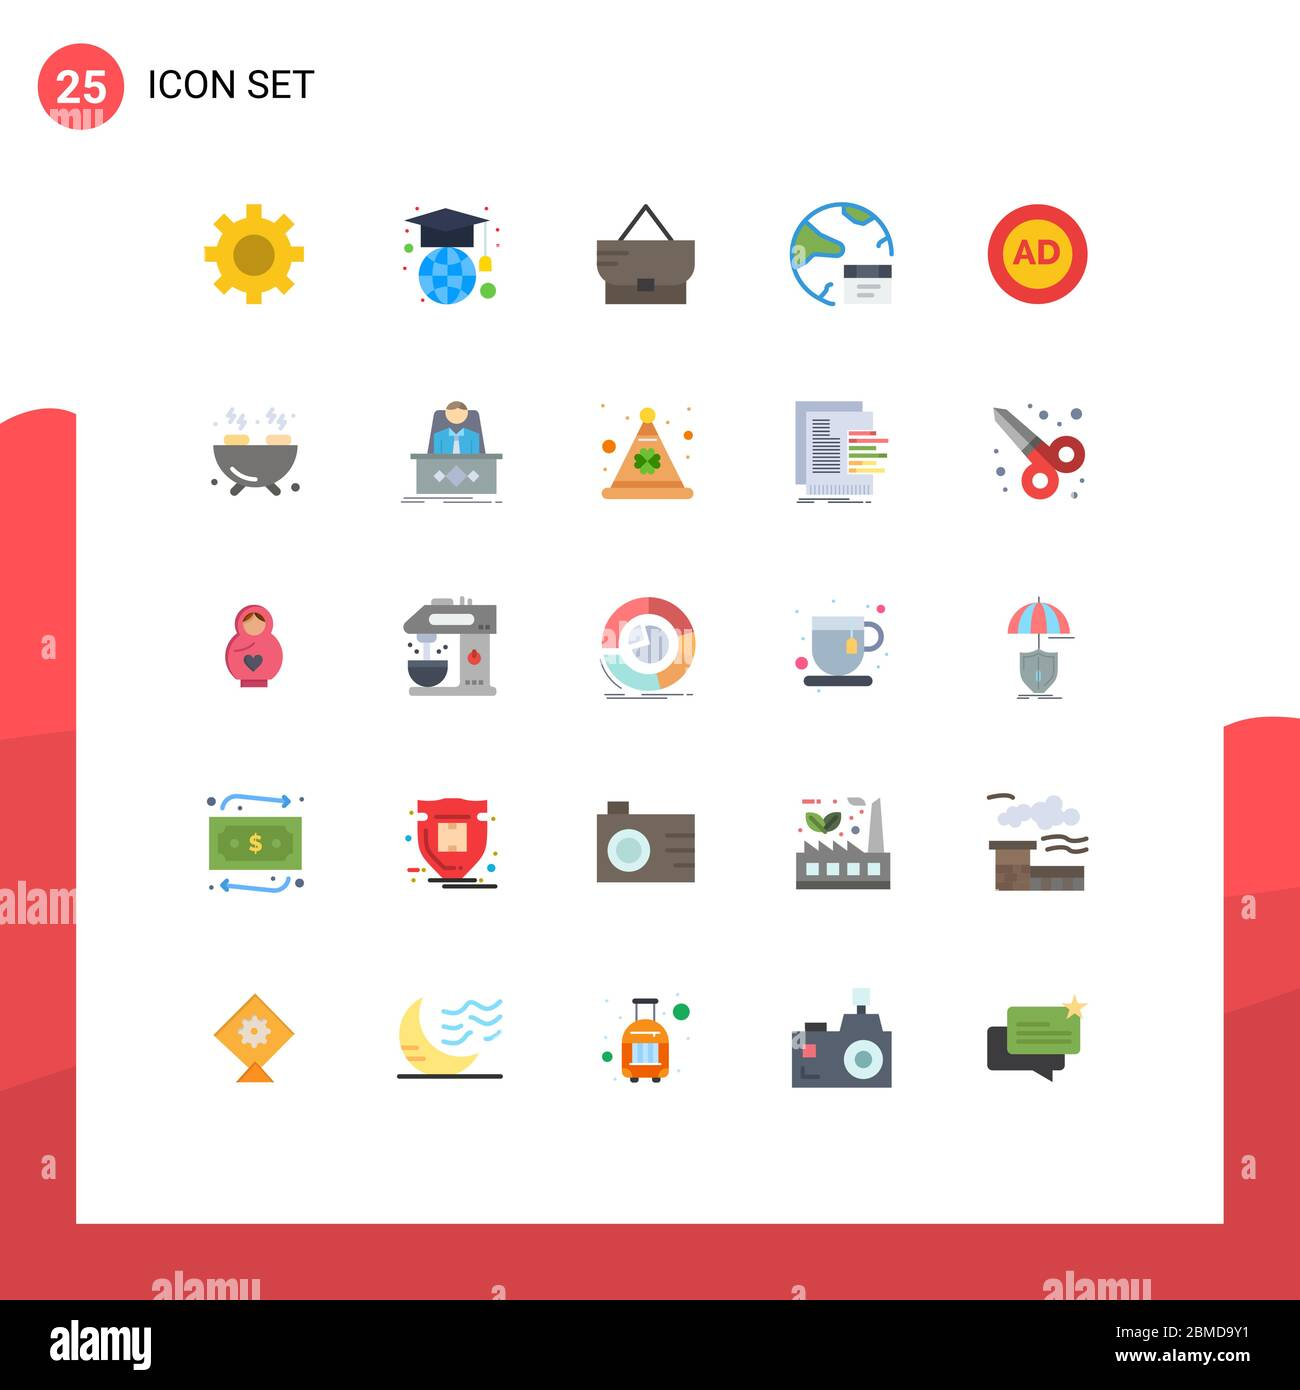 25 Universal Flat Color Signs Symbols Of Advertisement Ad Fashion Internet Develop Editable Vector Design Elements Stock Vector Image Art Alamy